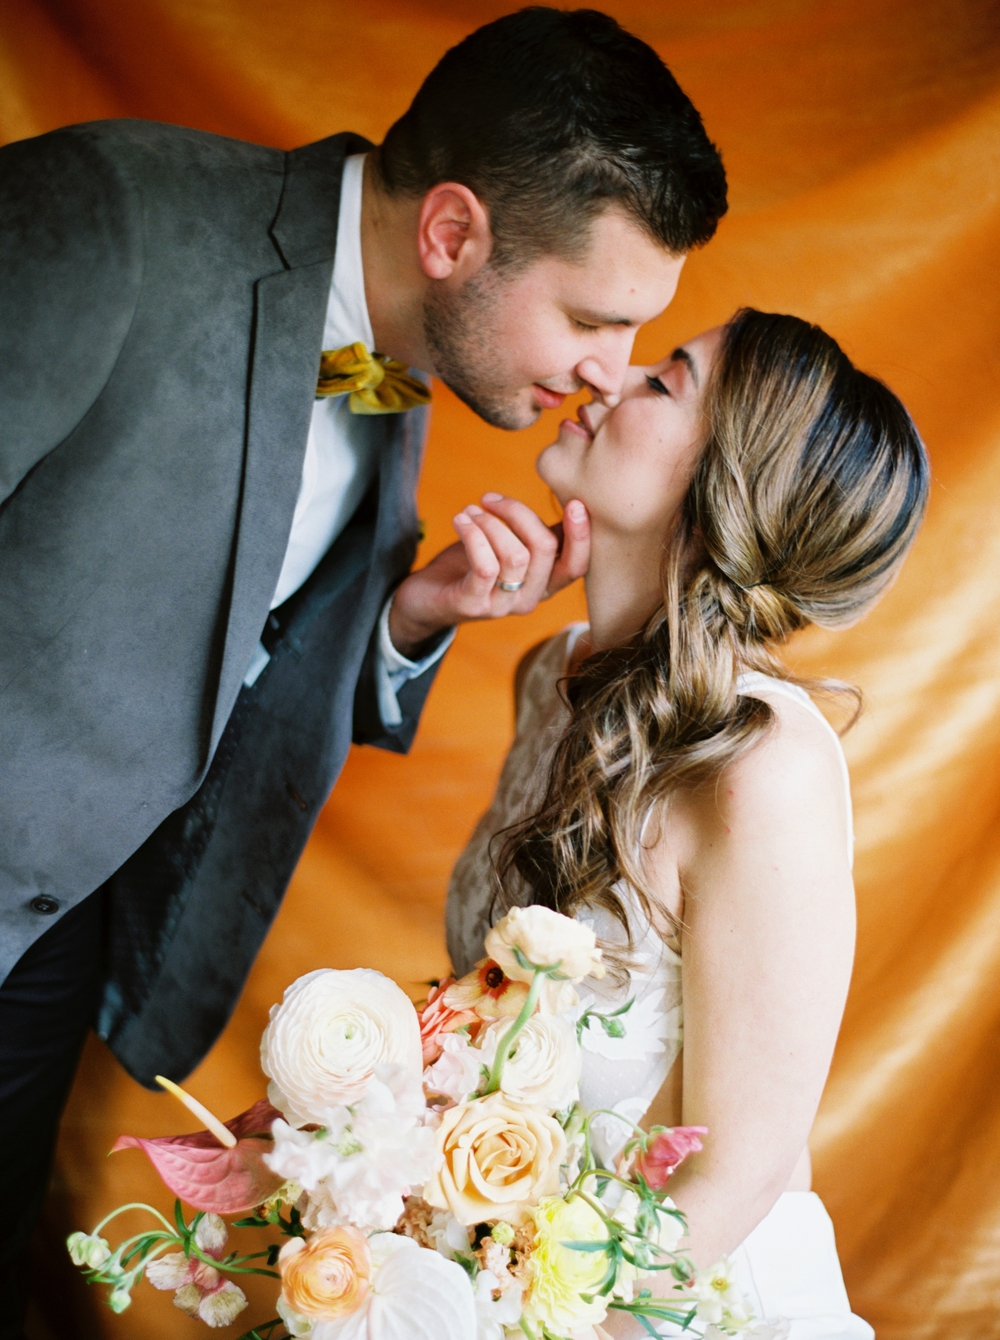 bride-and-groom-kissing-in-front-of-orange-backdrop